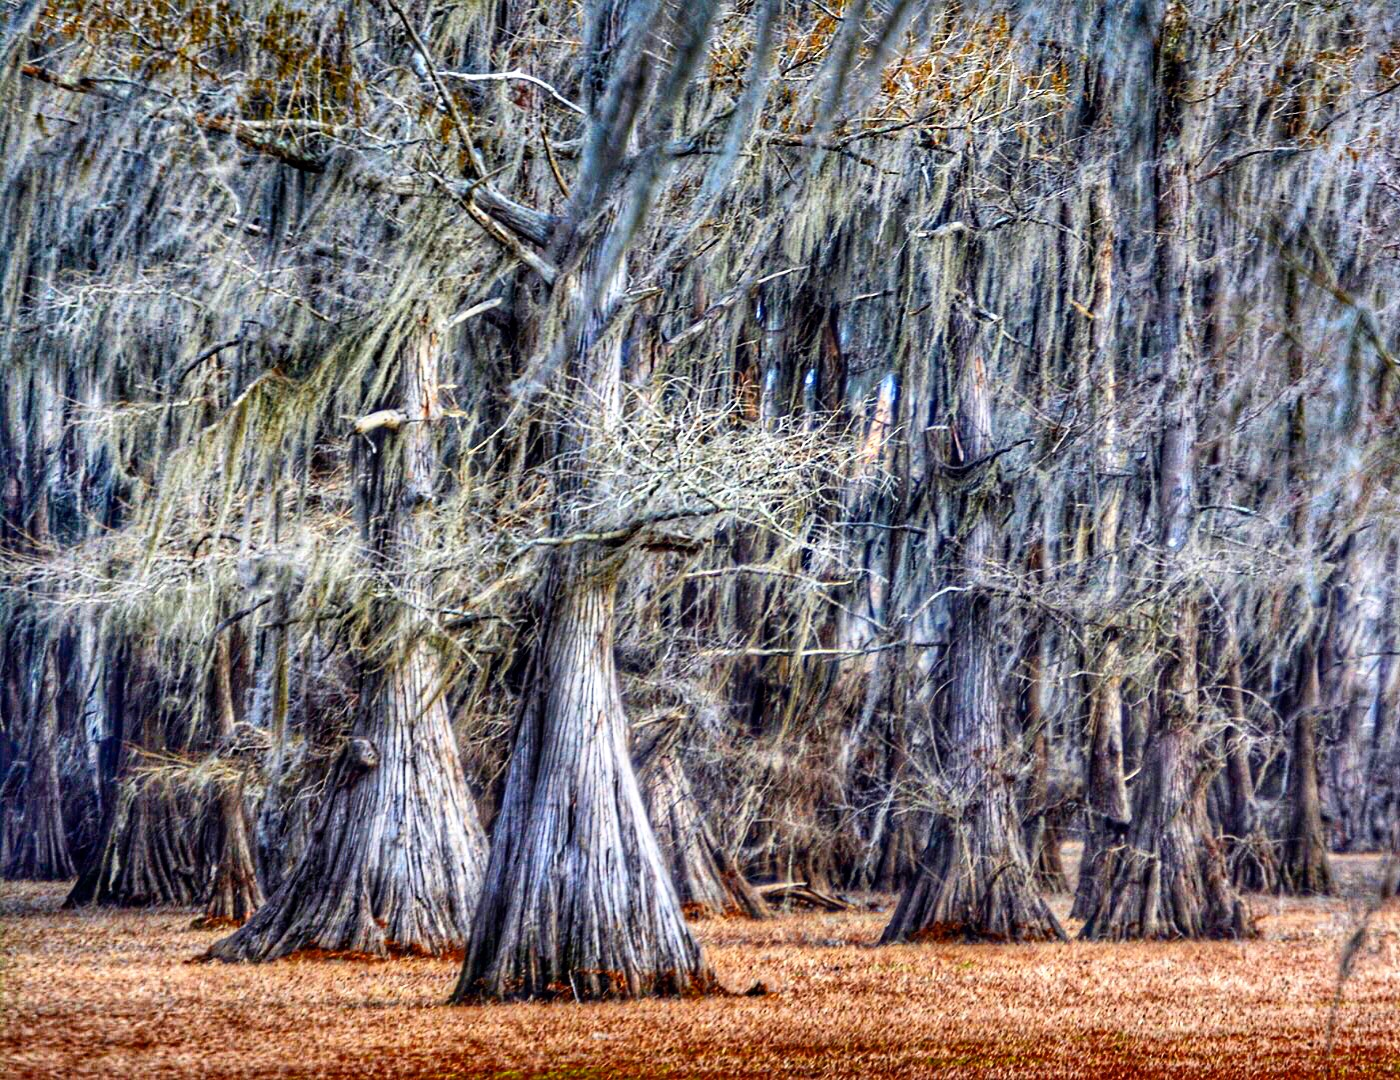 Uncertain Revisited: A Tour of Caddo Lake